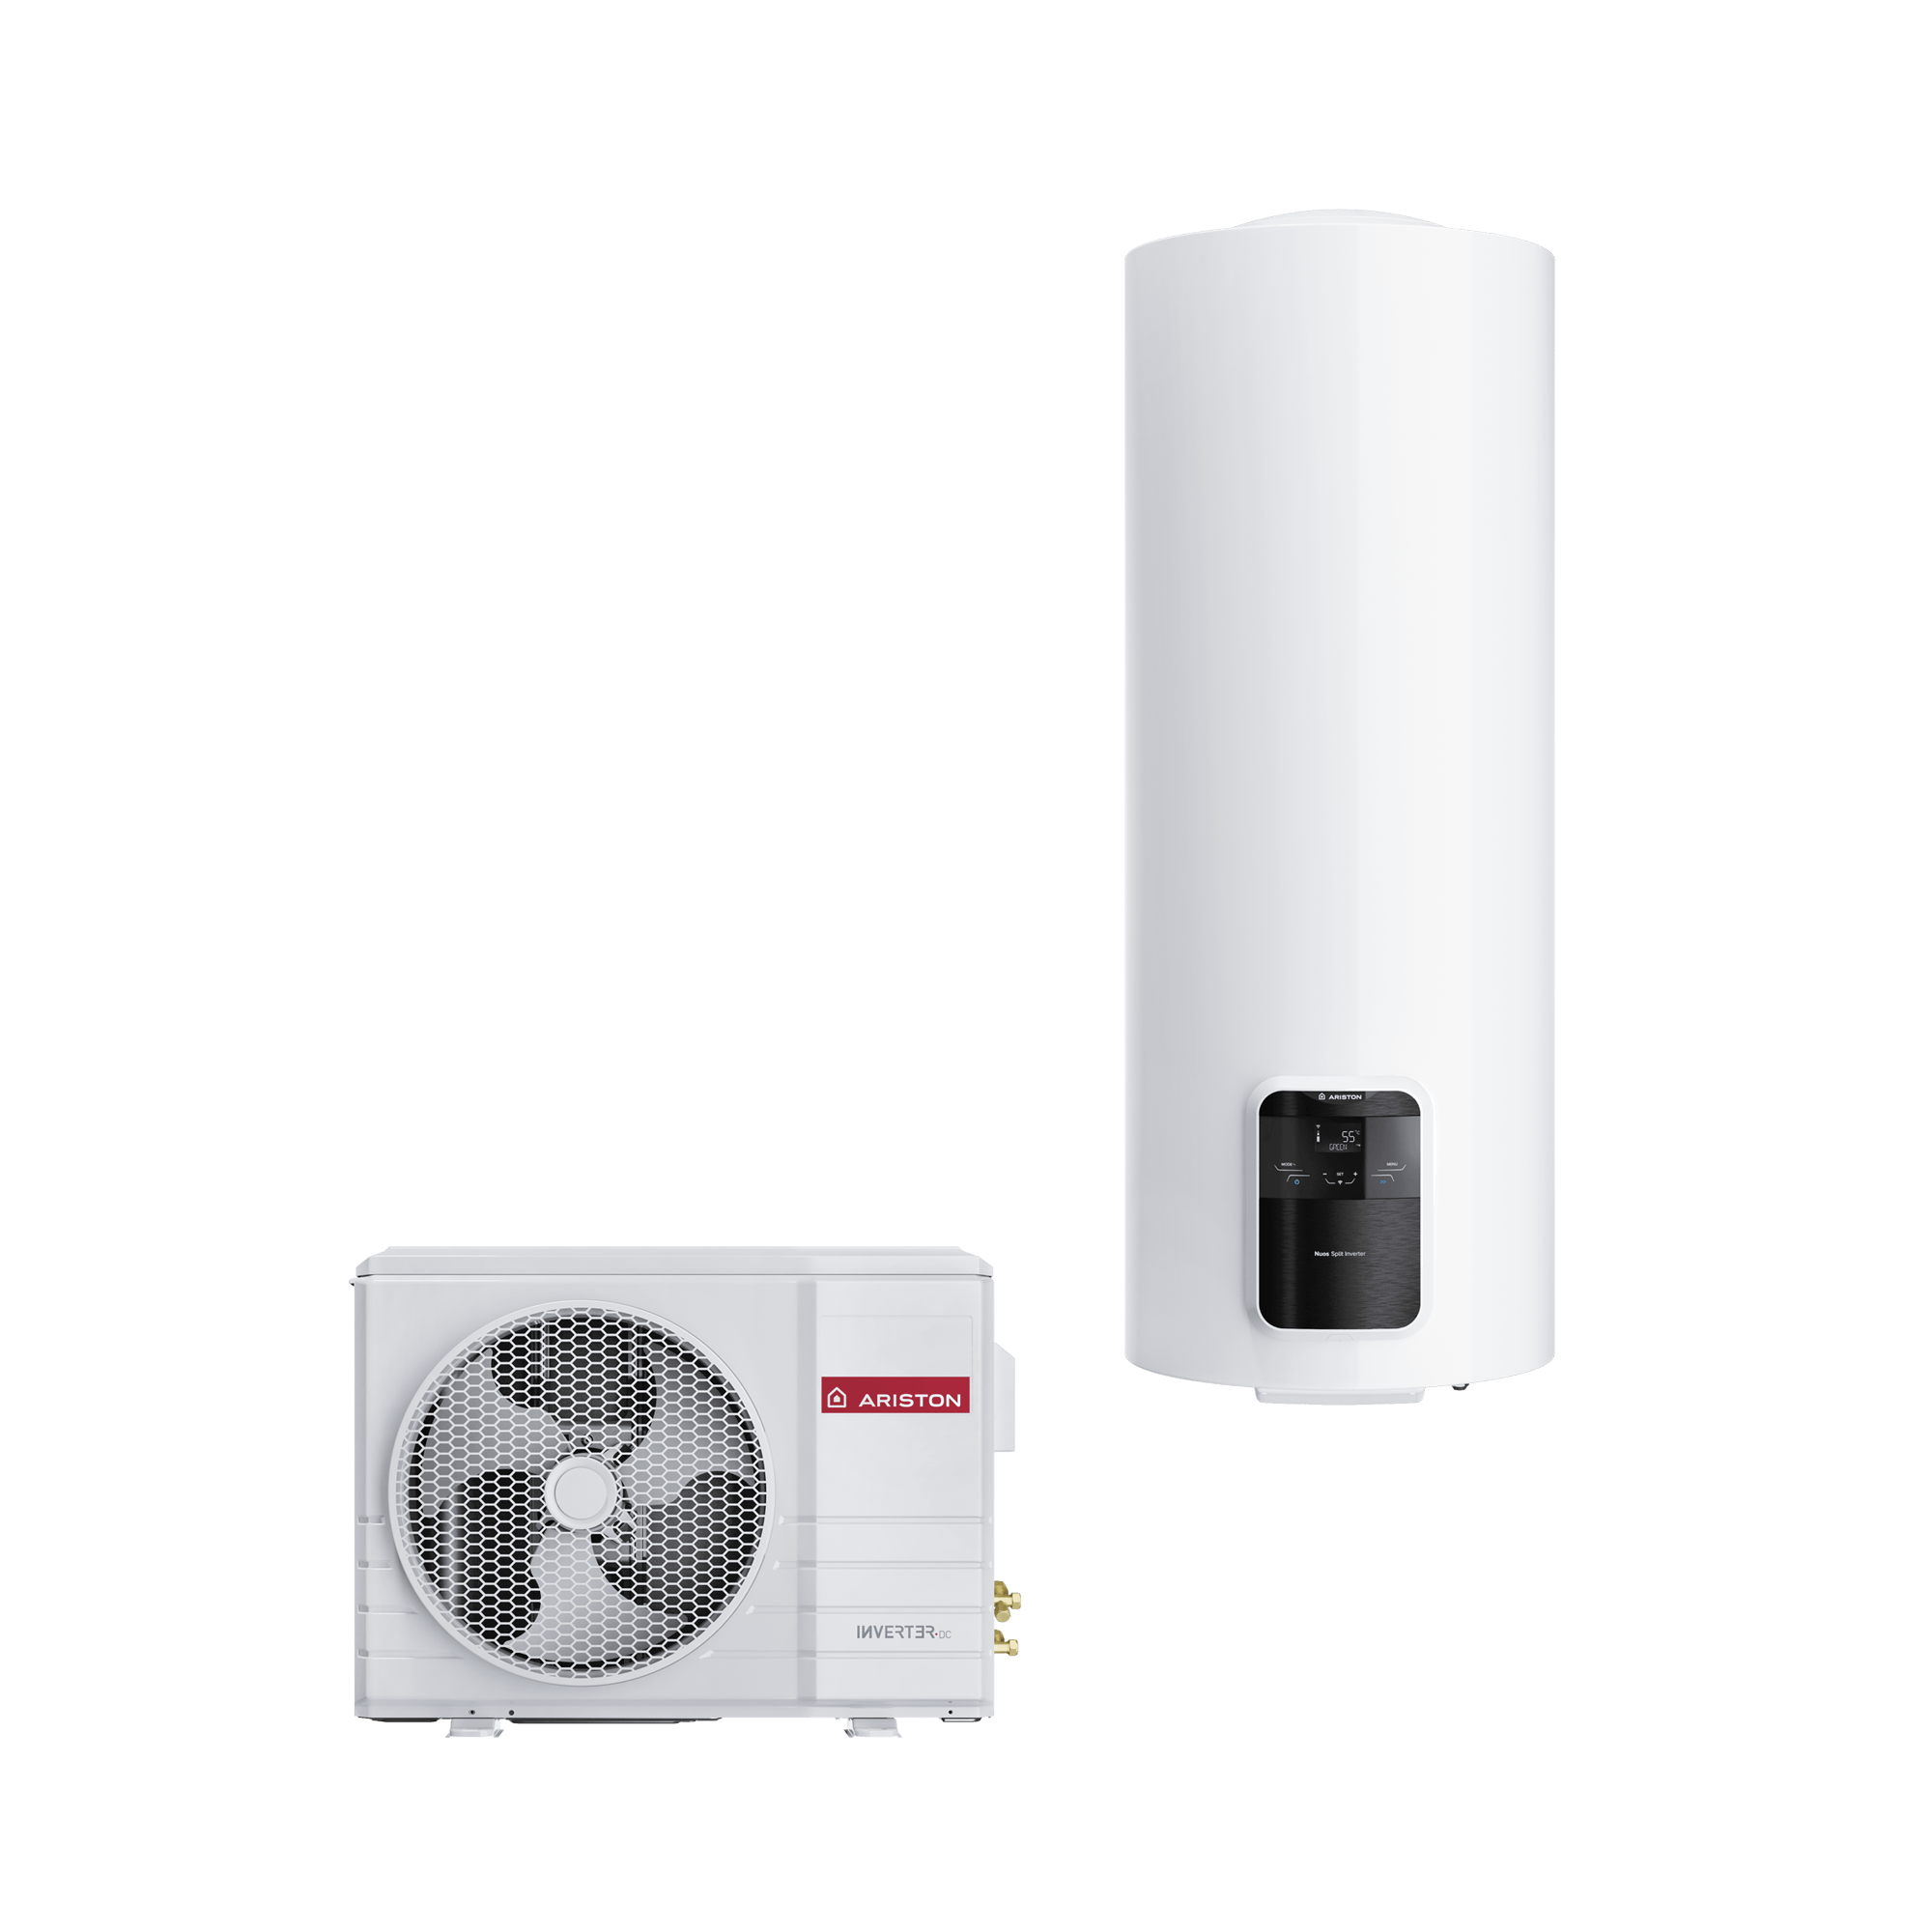 NUOS SPLIT INVERTER WiFi